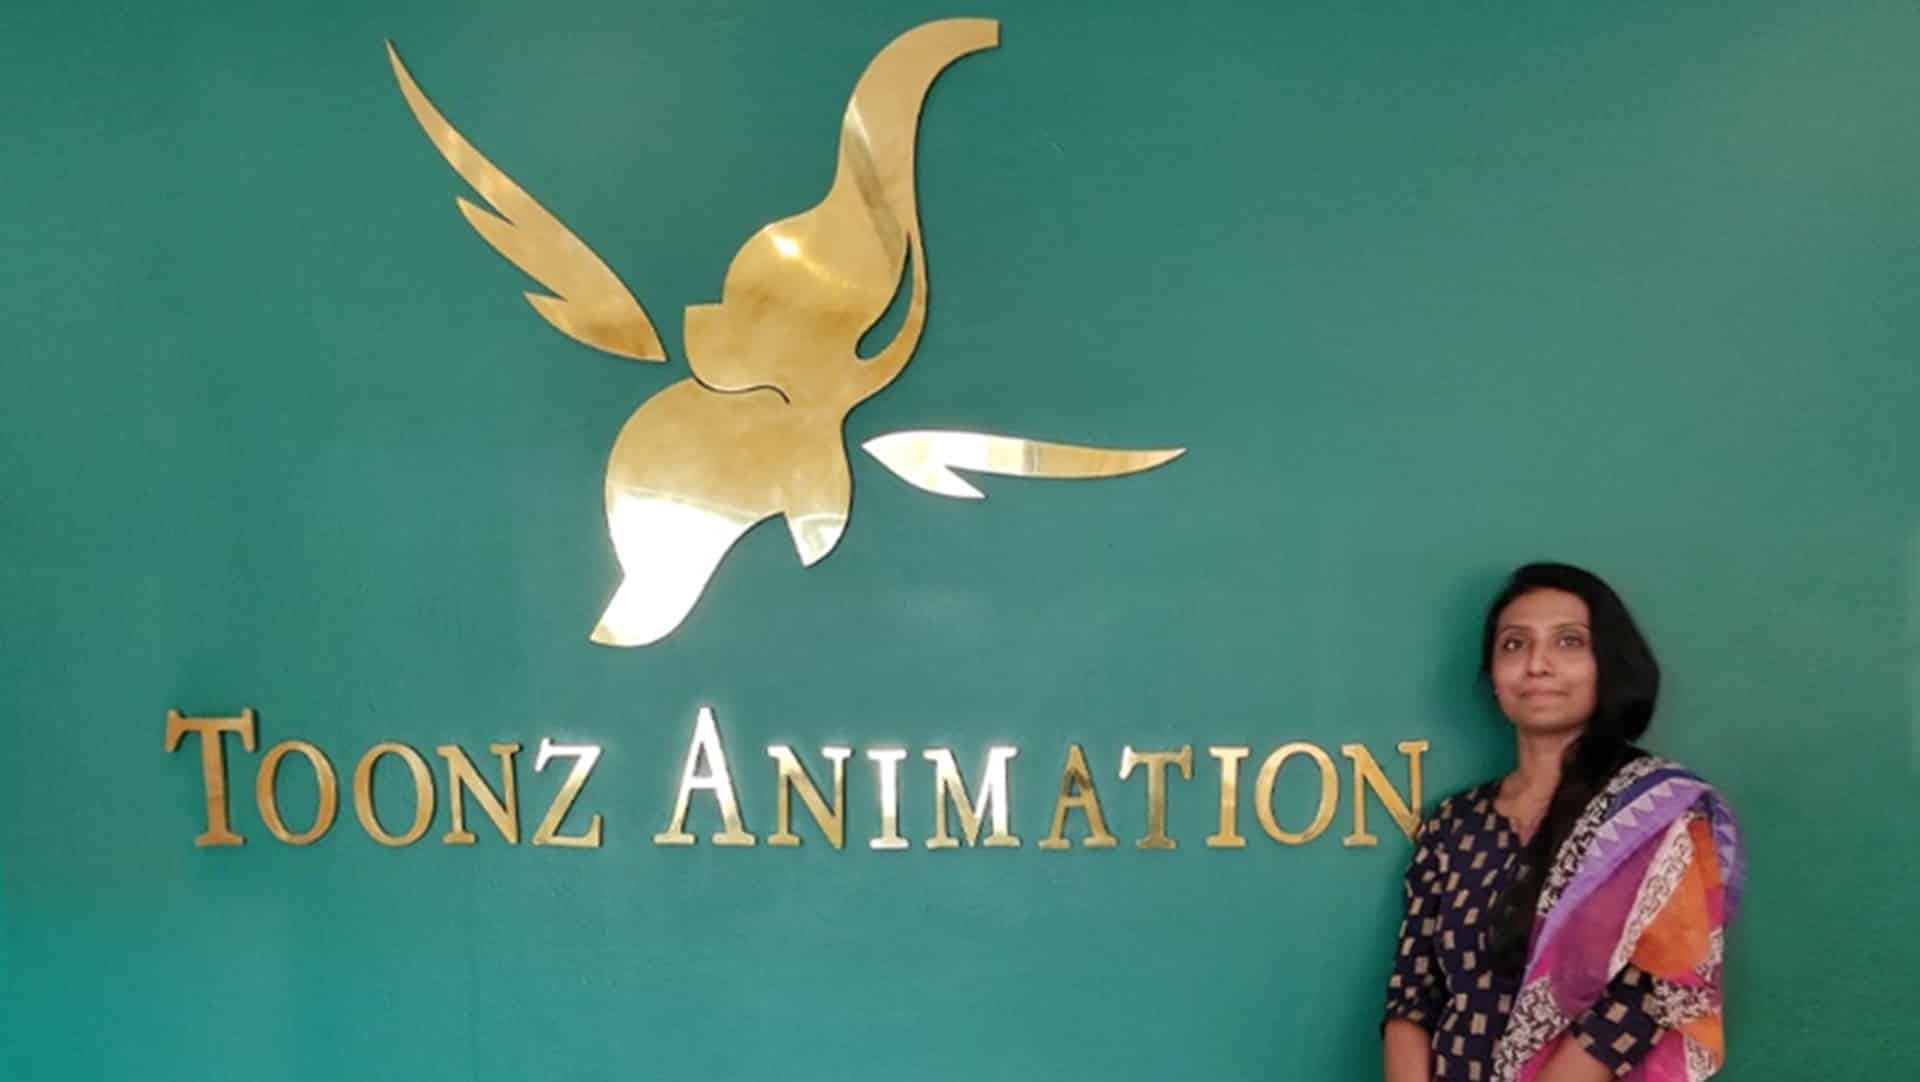 toonz media group launched e-learning platform